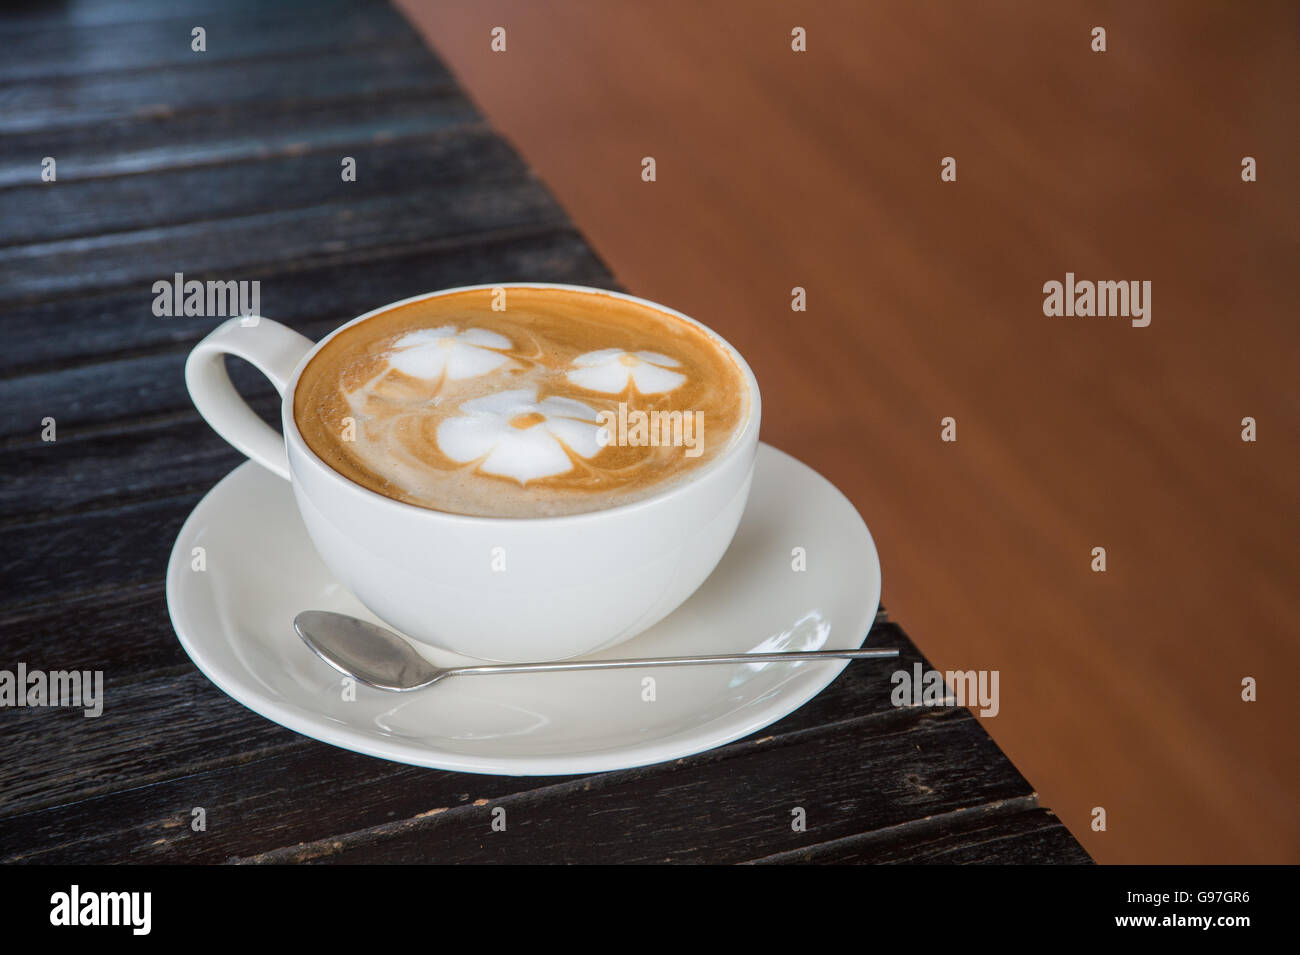 A cup of coffee with flower pattern in a white cup on wooden background. - Stock Image